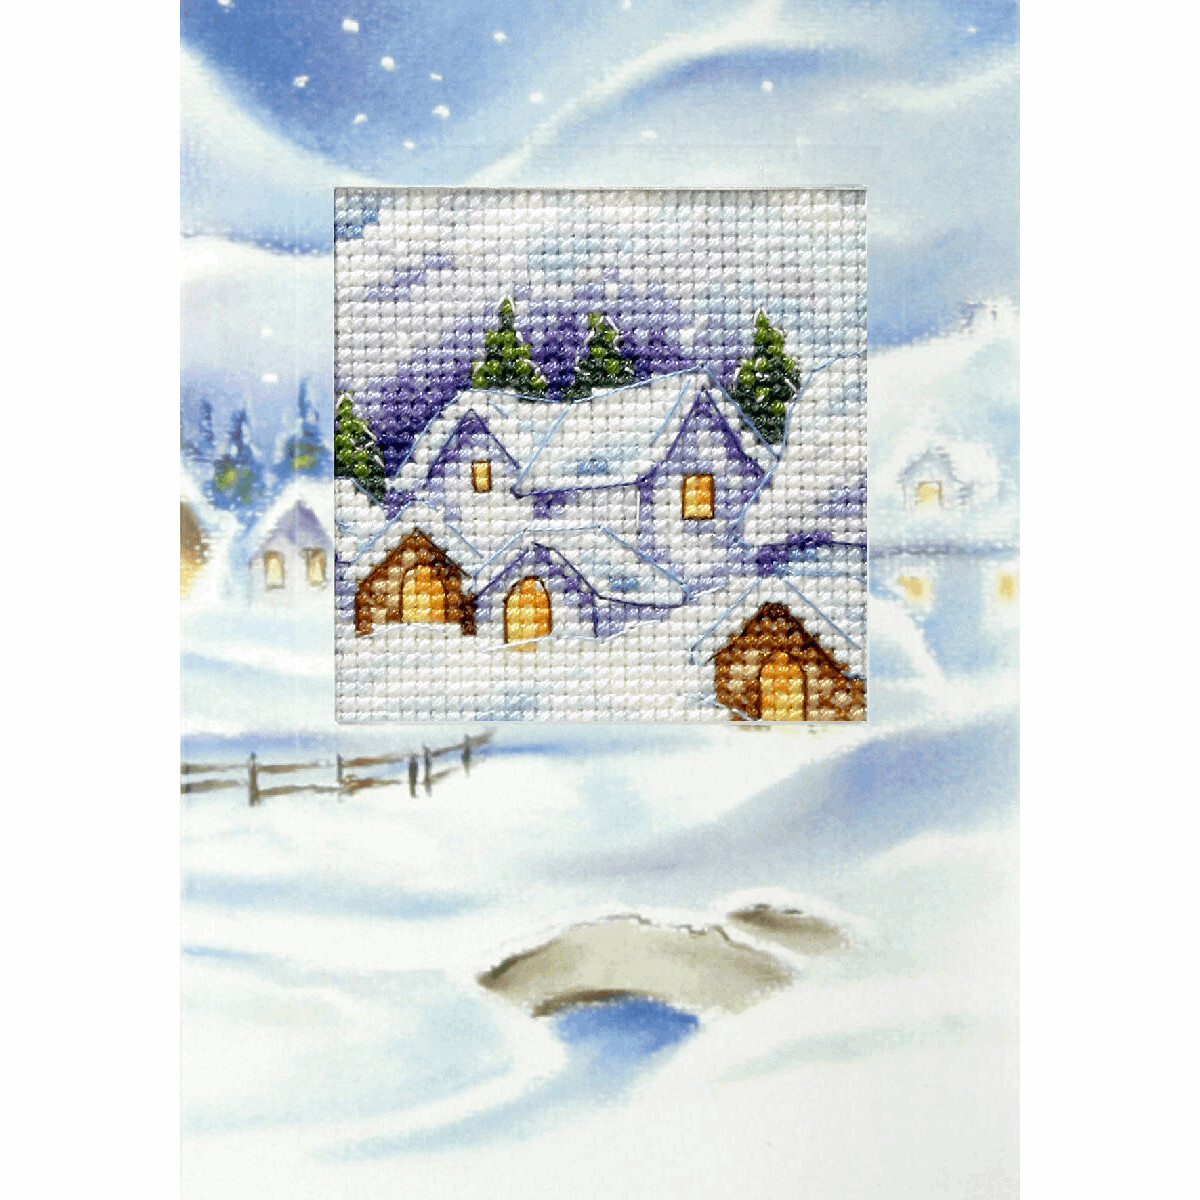 Counted Cross Stitch Kit Greetings Card: Christmas Village